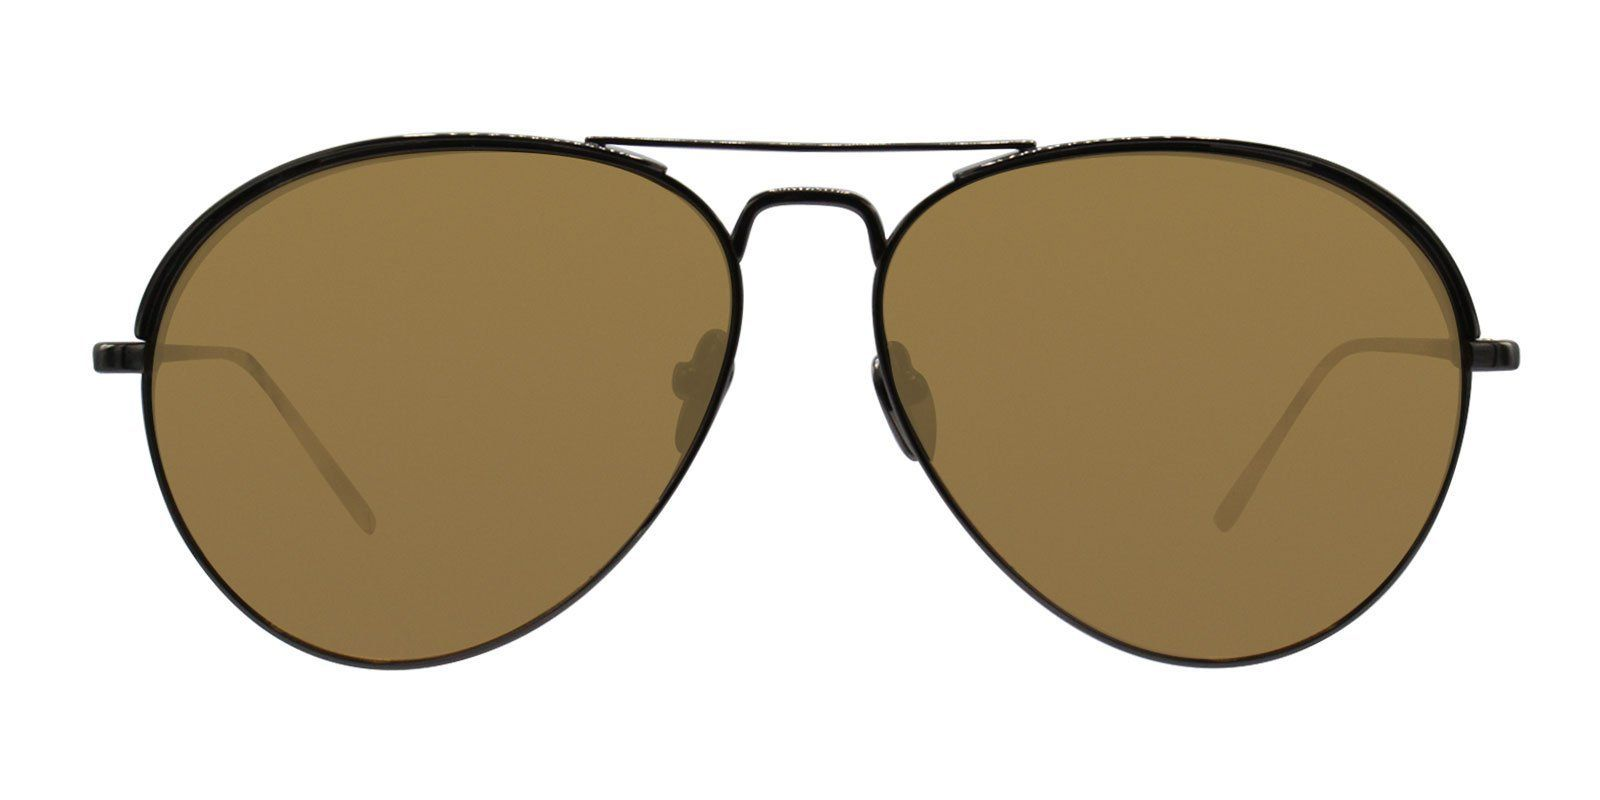 c3c9a5ec136 Linda Farrow - LFL594 Brown - Bronze sunglasses